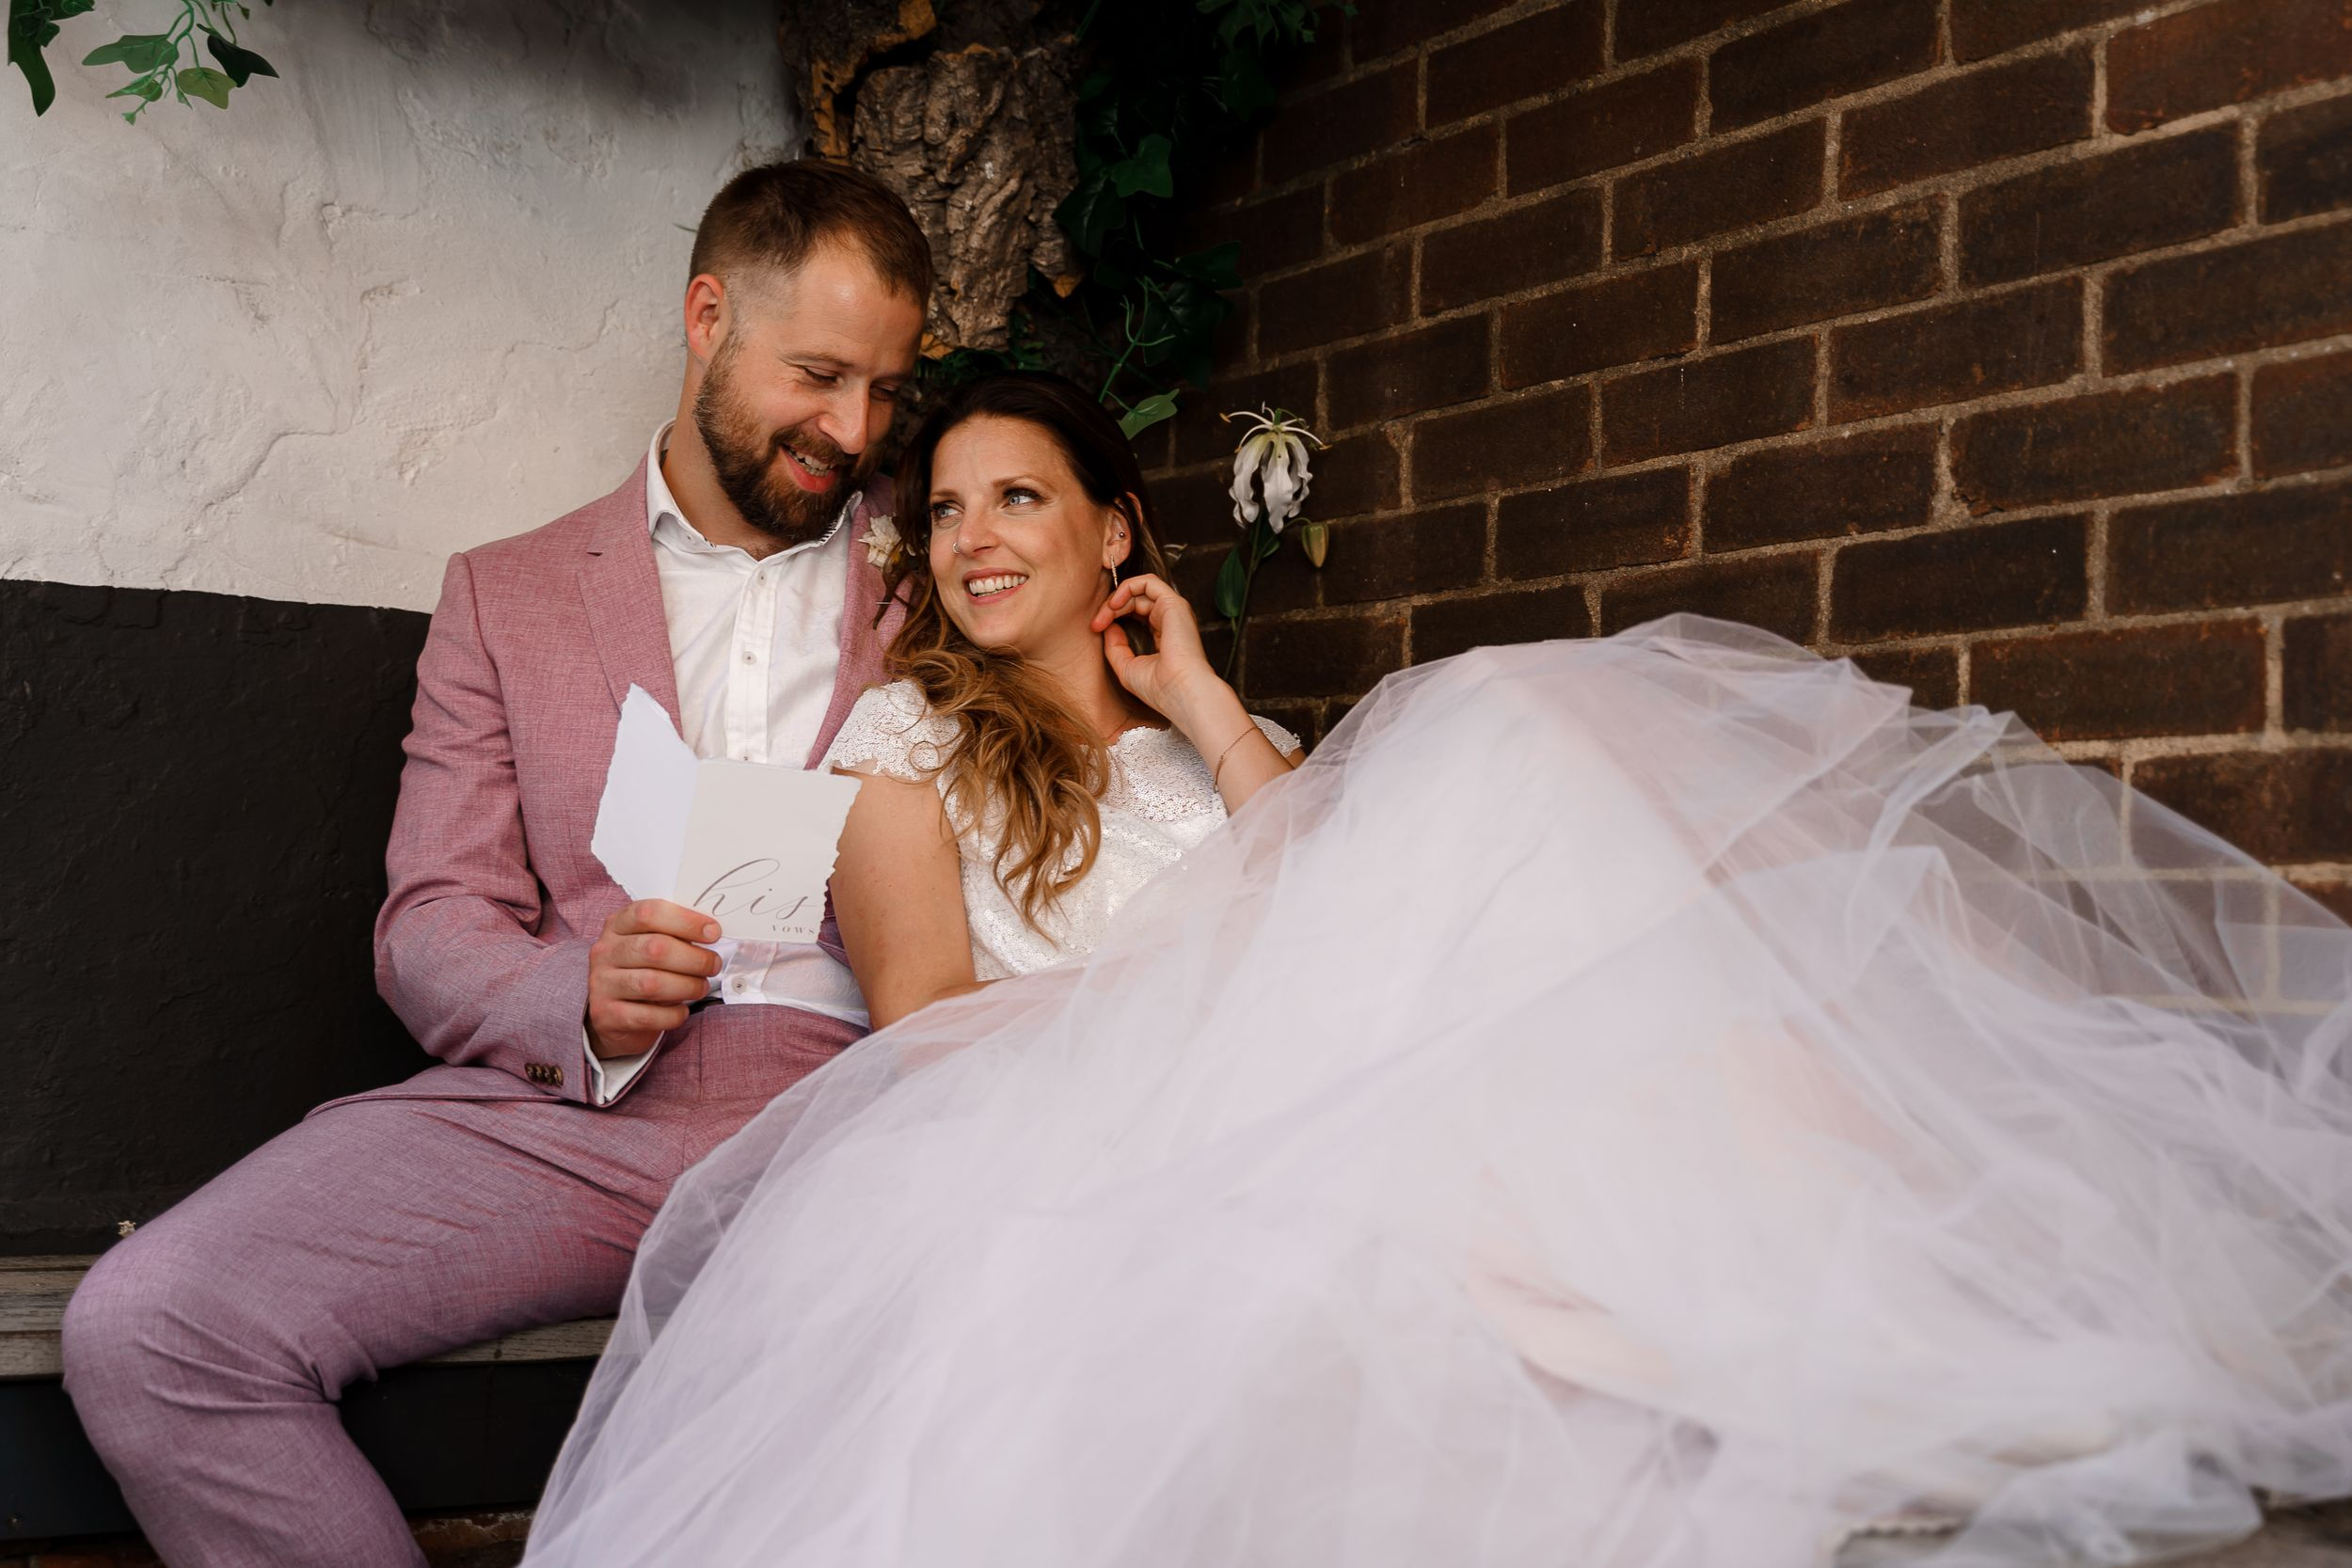 A newlywed couple read vows to each other - introvert's guide to wedding photography.